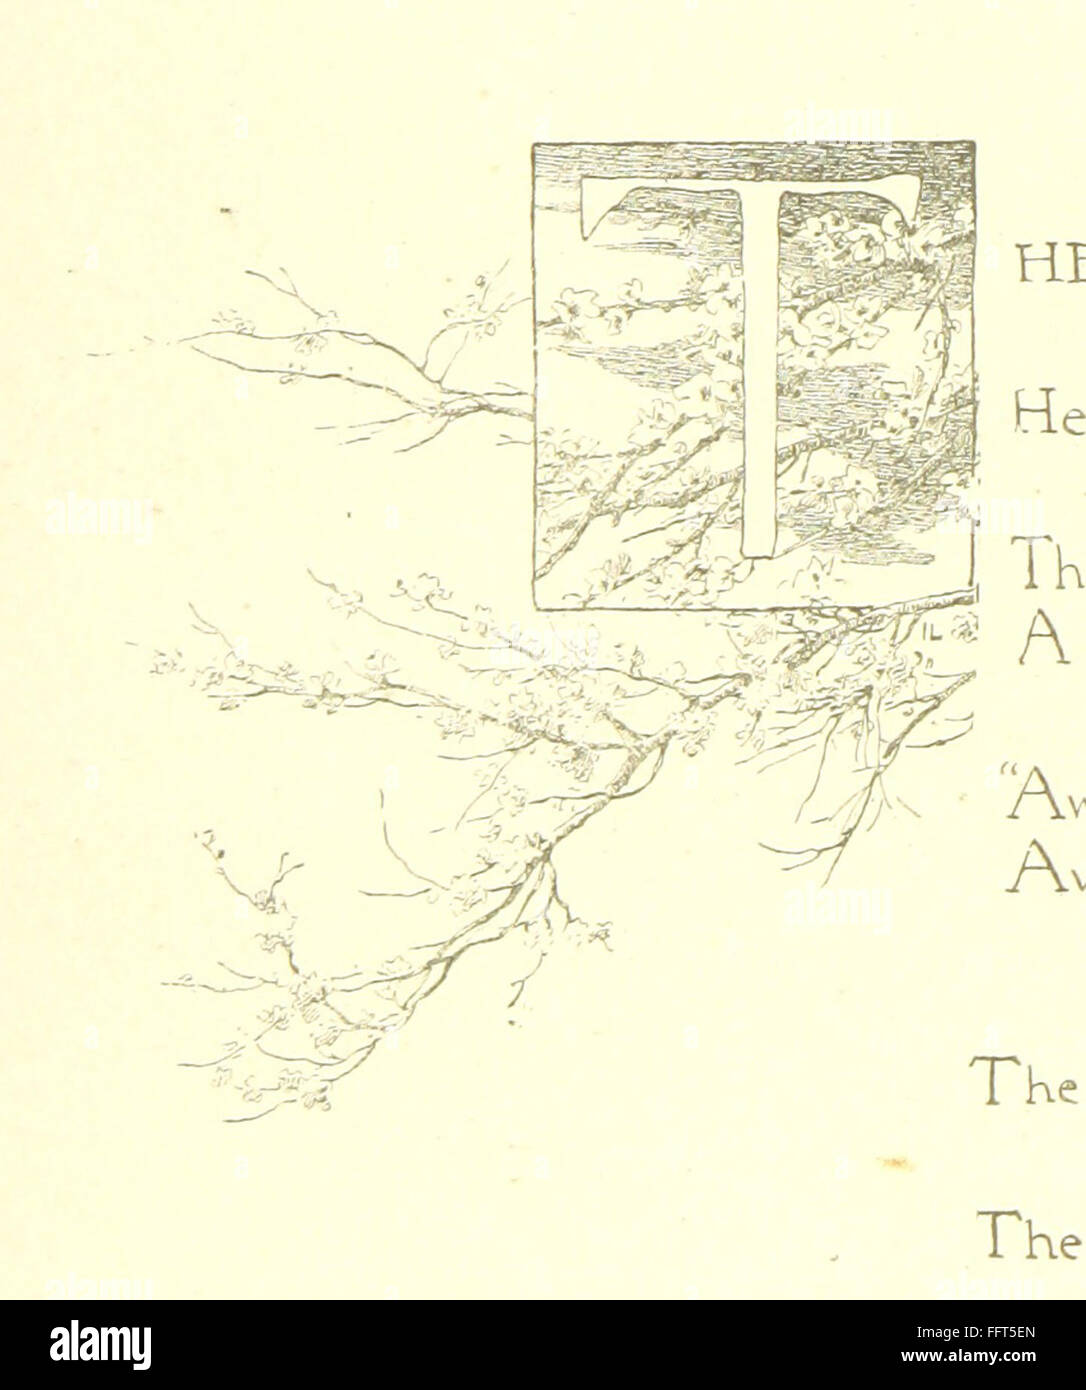 2 of 'The Beautiful World and other poems, by Helen J. Wood, Helen M. Waithman, and Ethel Dawson. Illustrated' - Stock Image